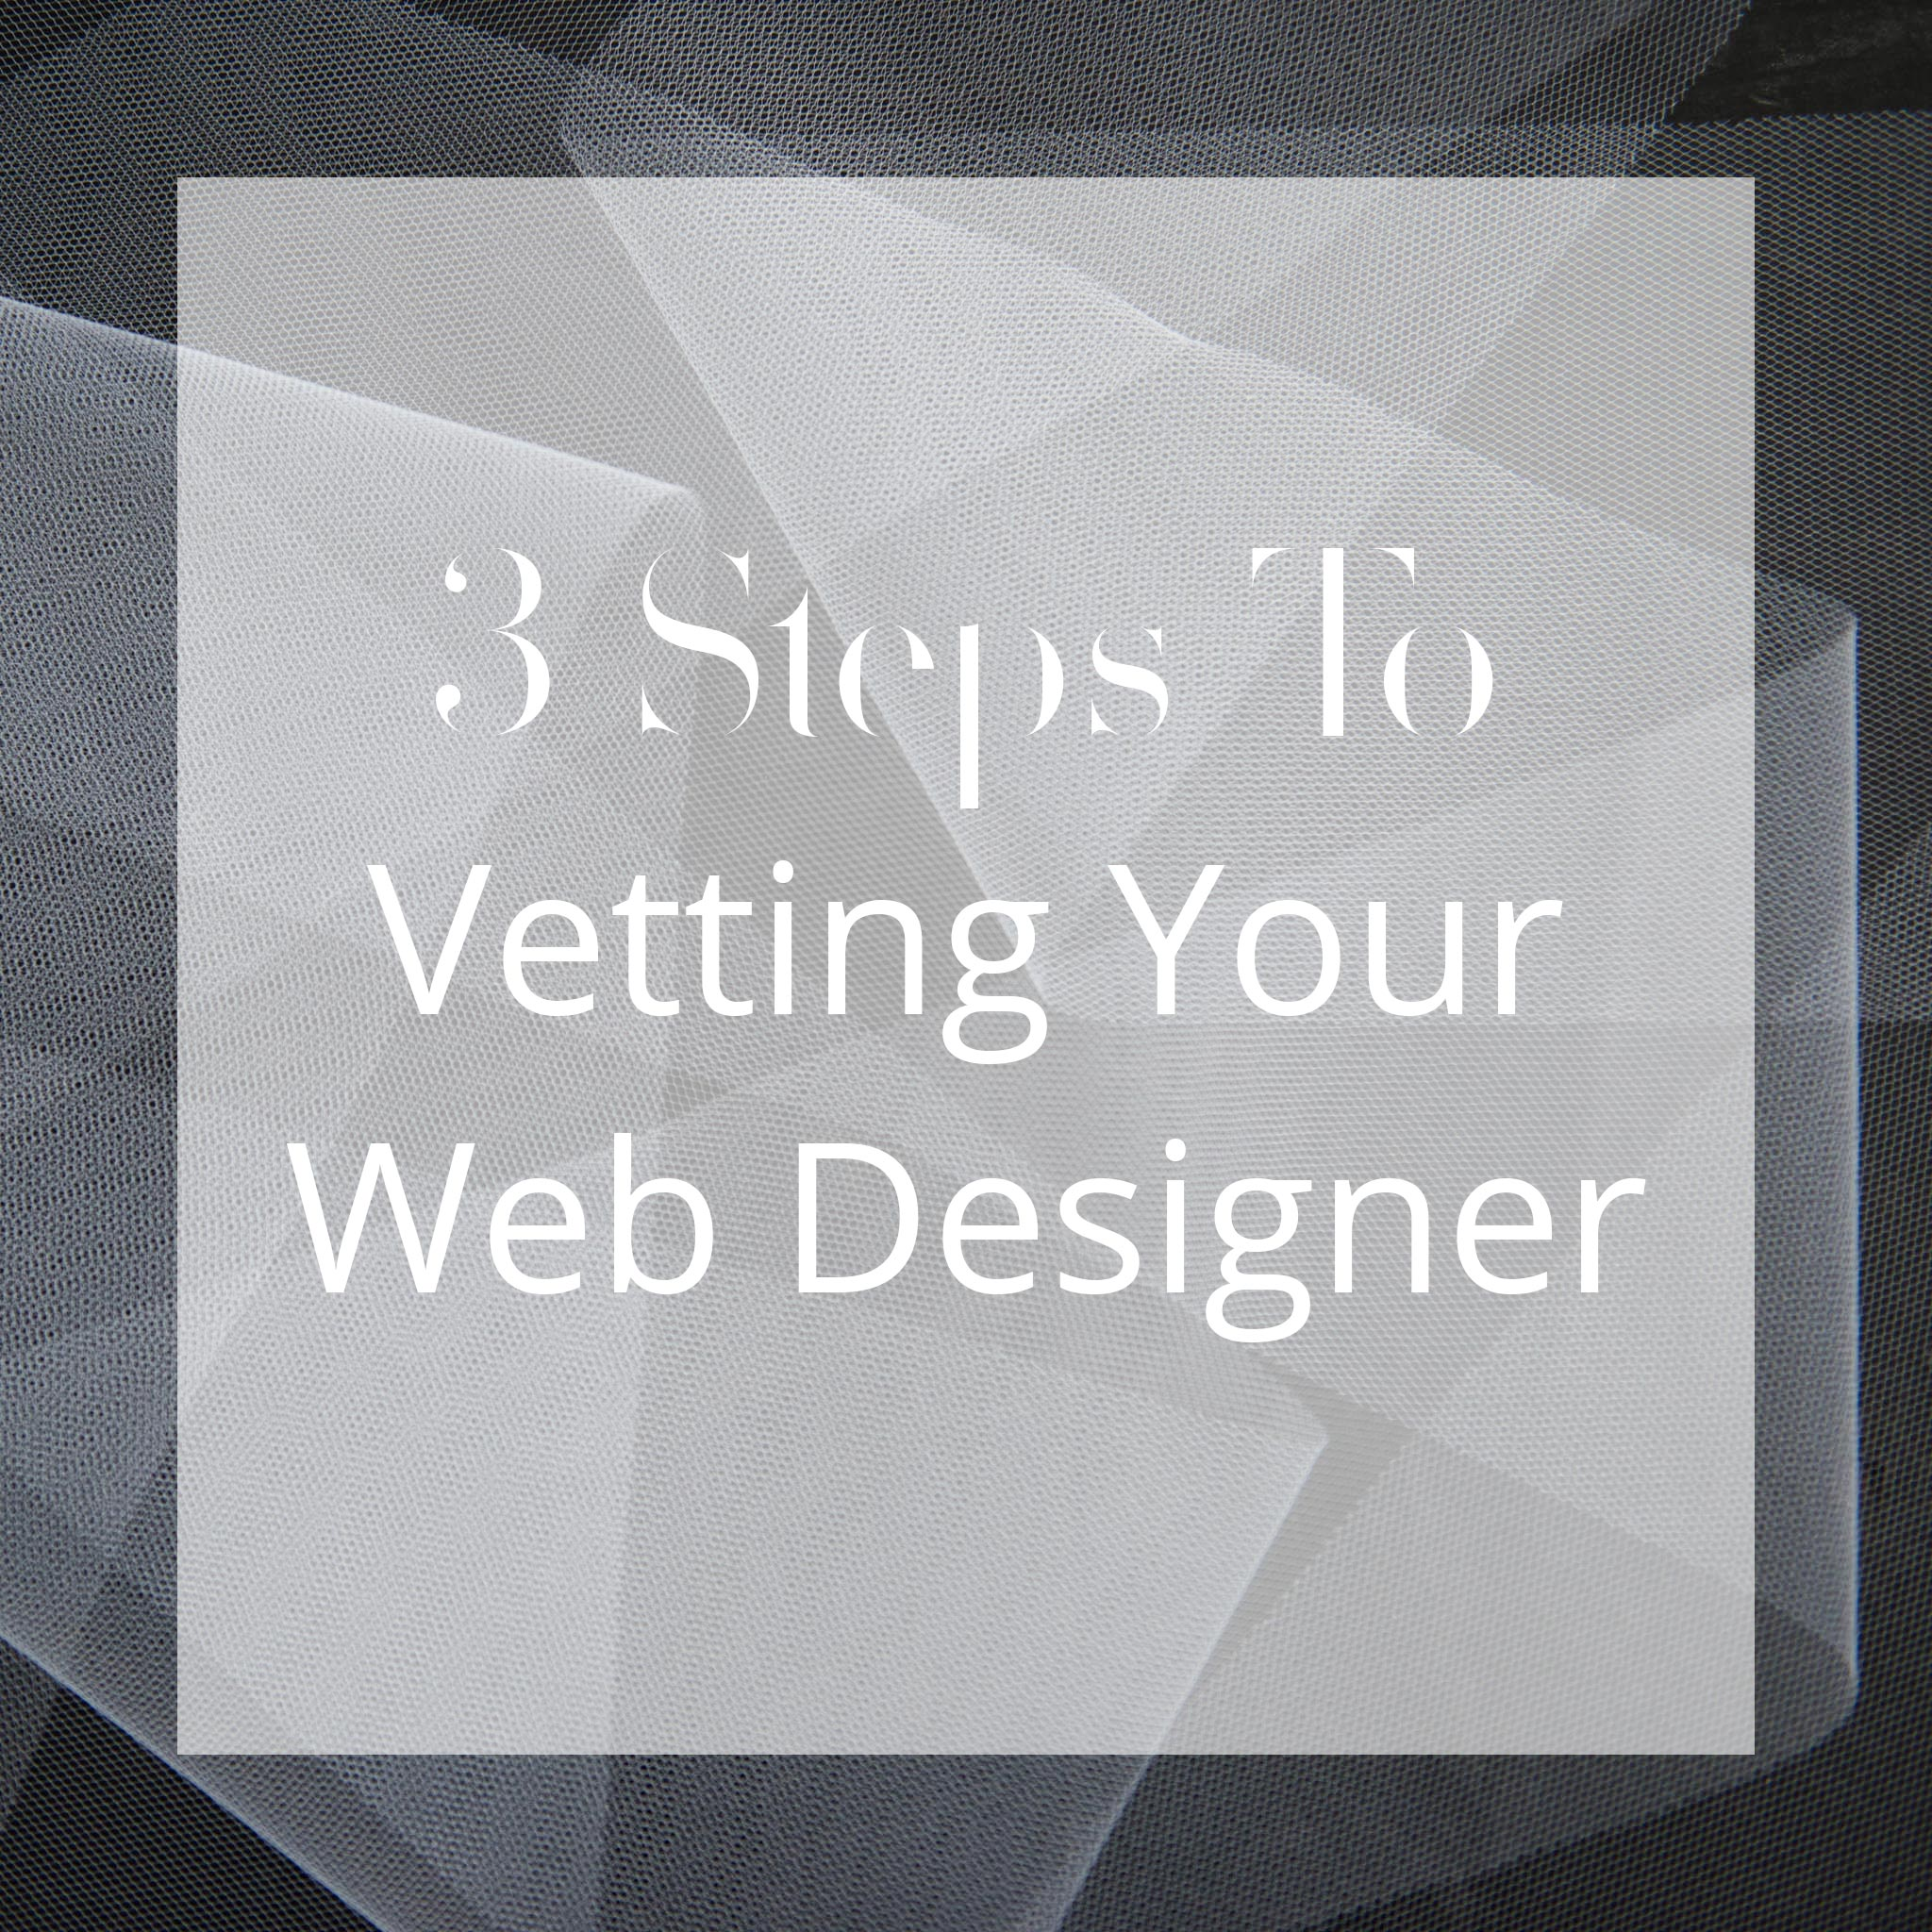 3-steps-to-vetting-your-web-designer-lorna-stell-photo